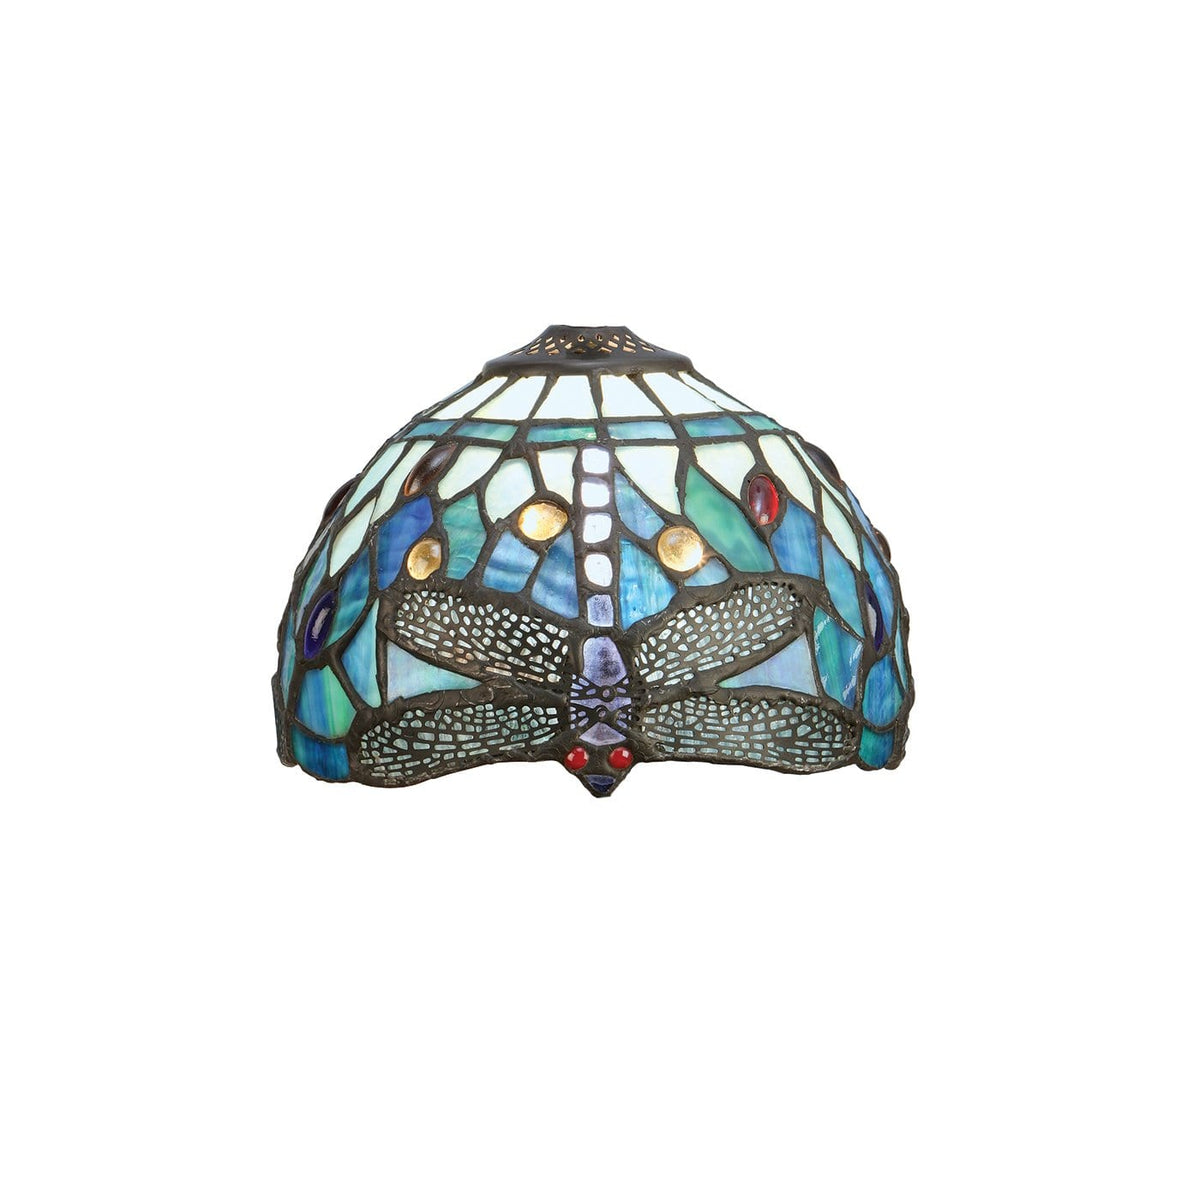 Blue Dragonfly 20cm Tiffany Shade by Interiors 1900